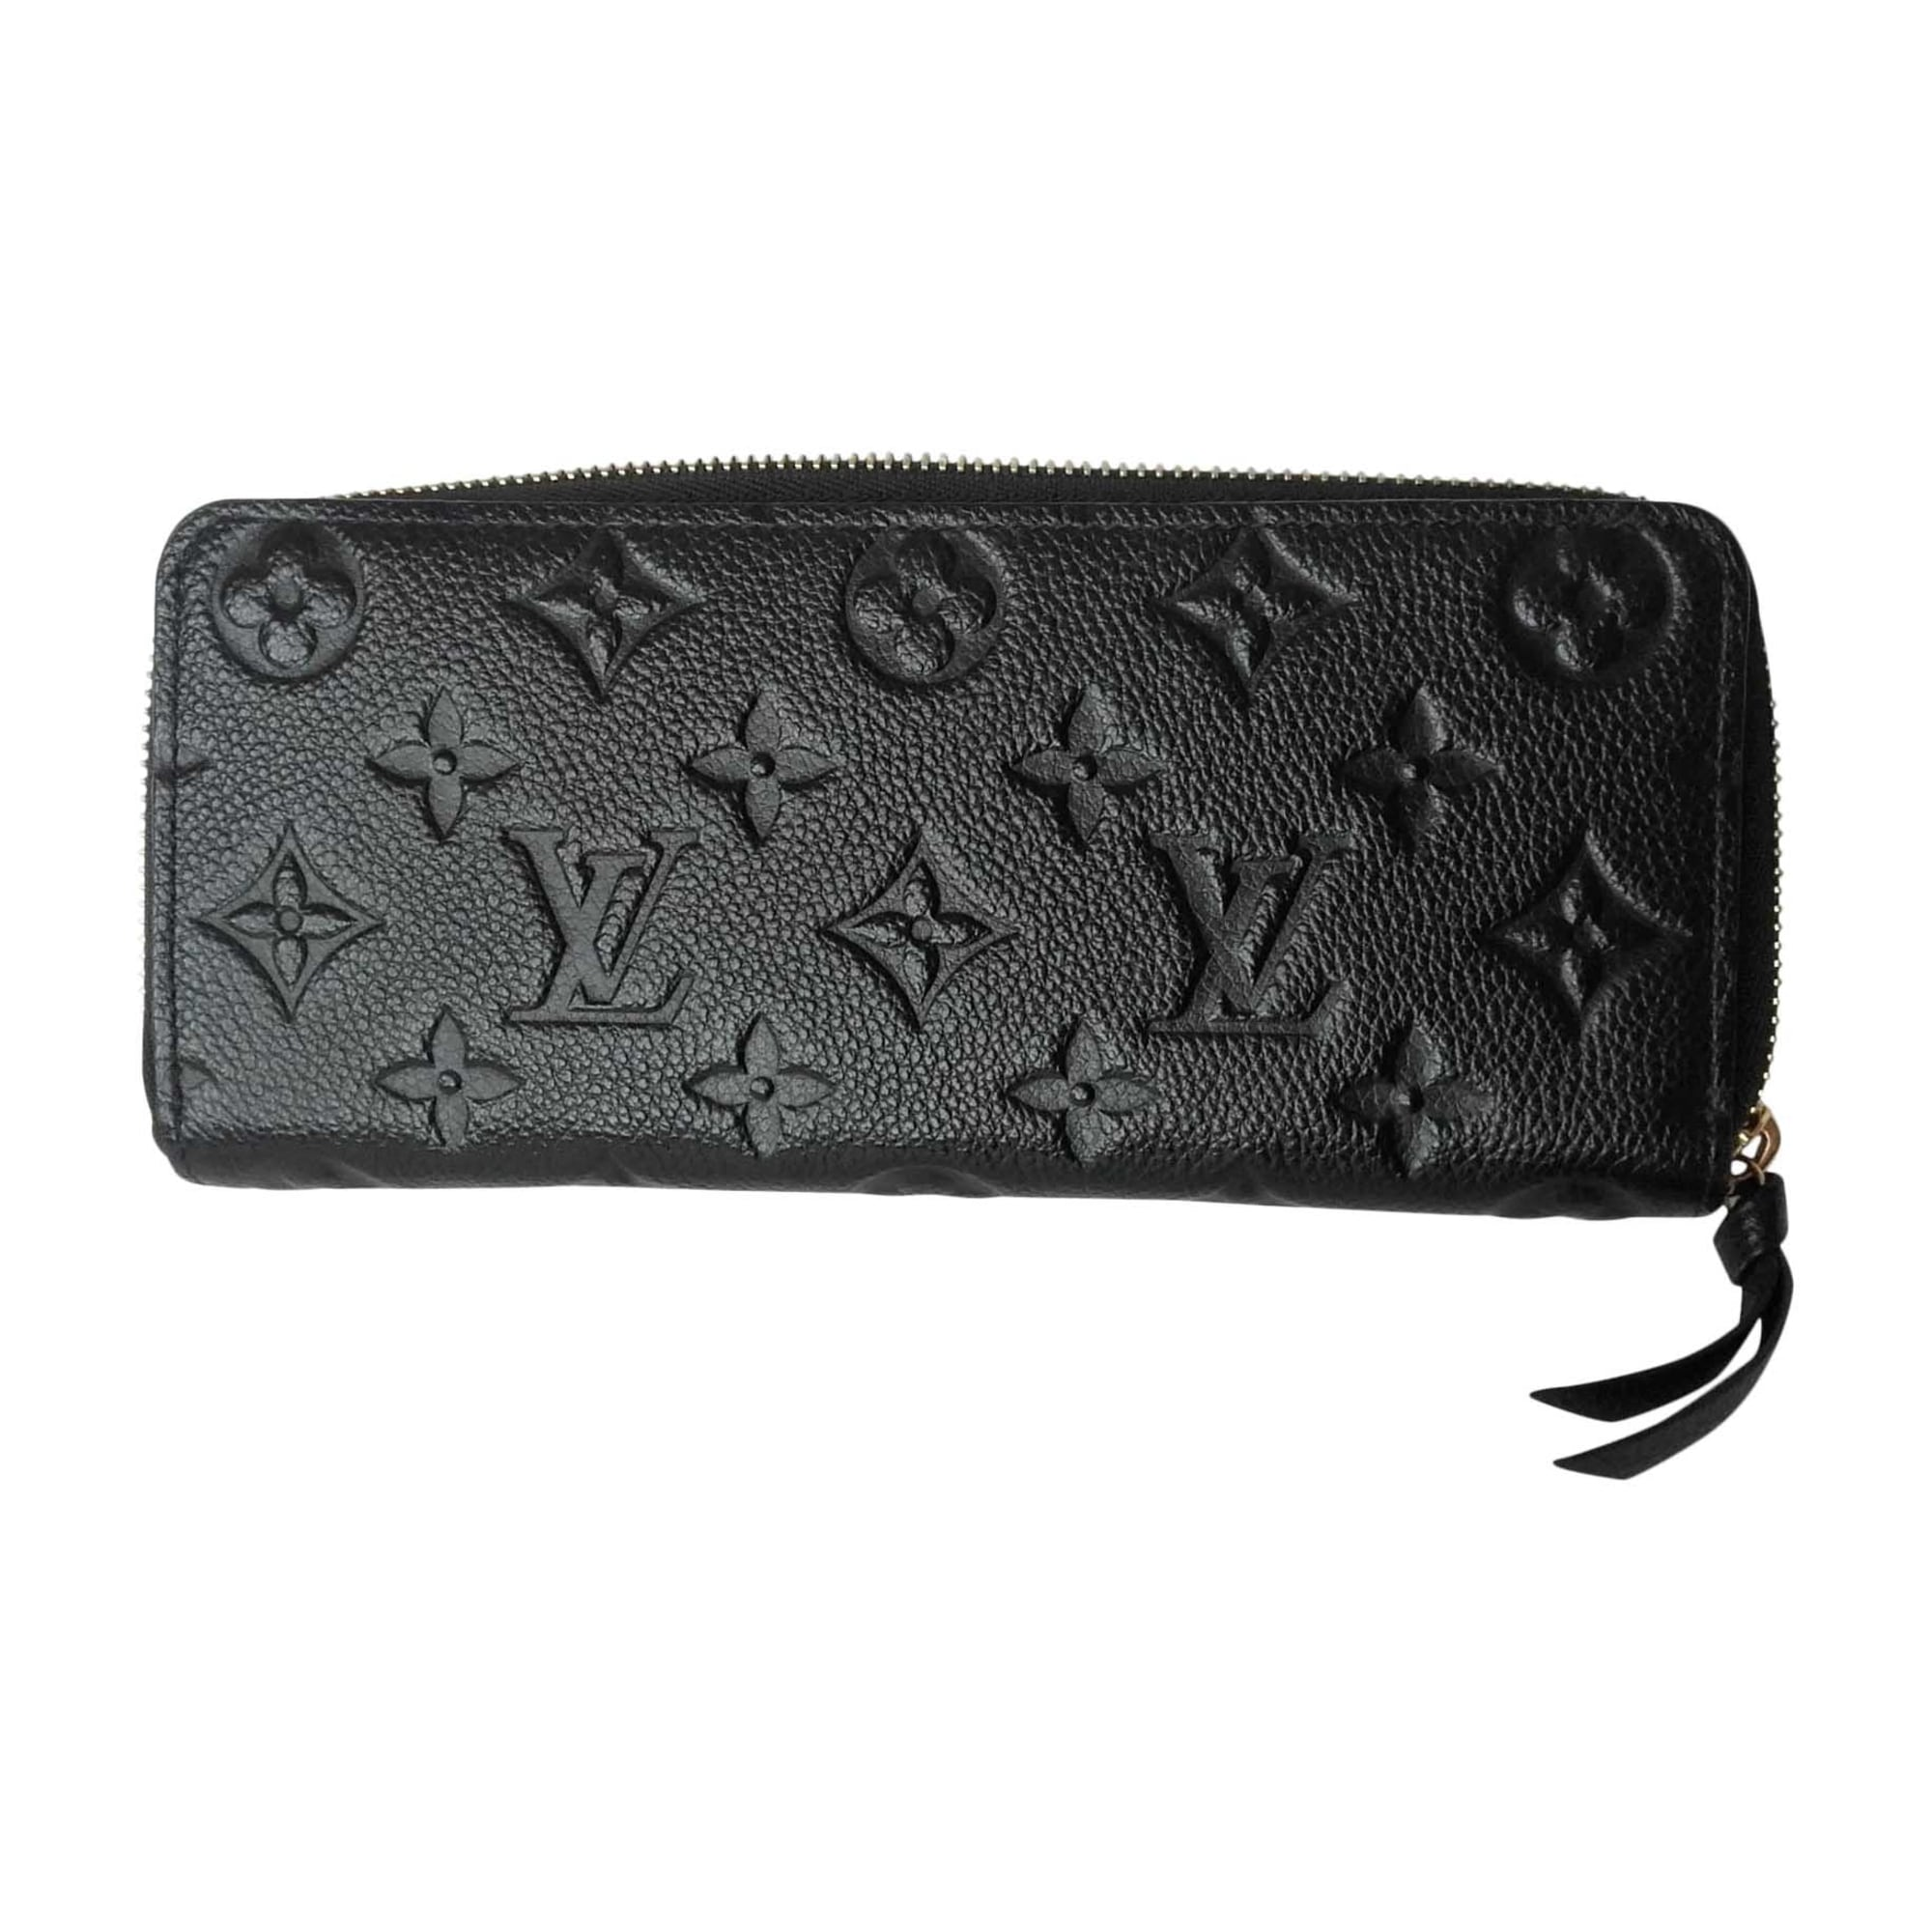 Wallet LOUIS VUITTON Black